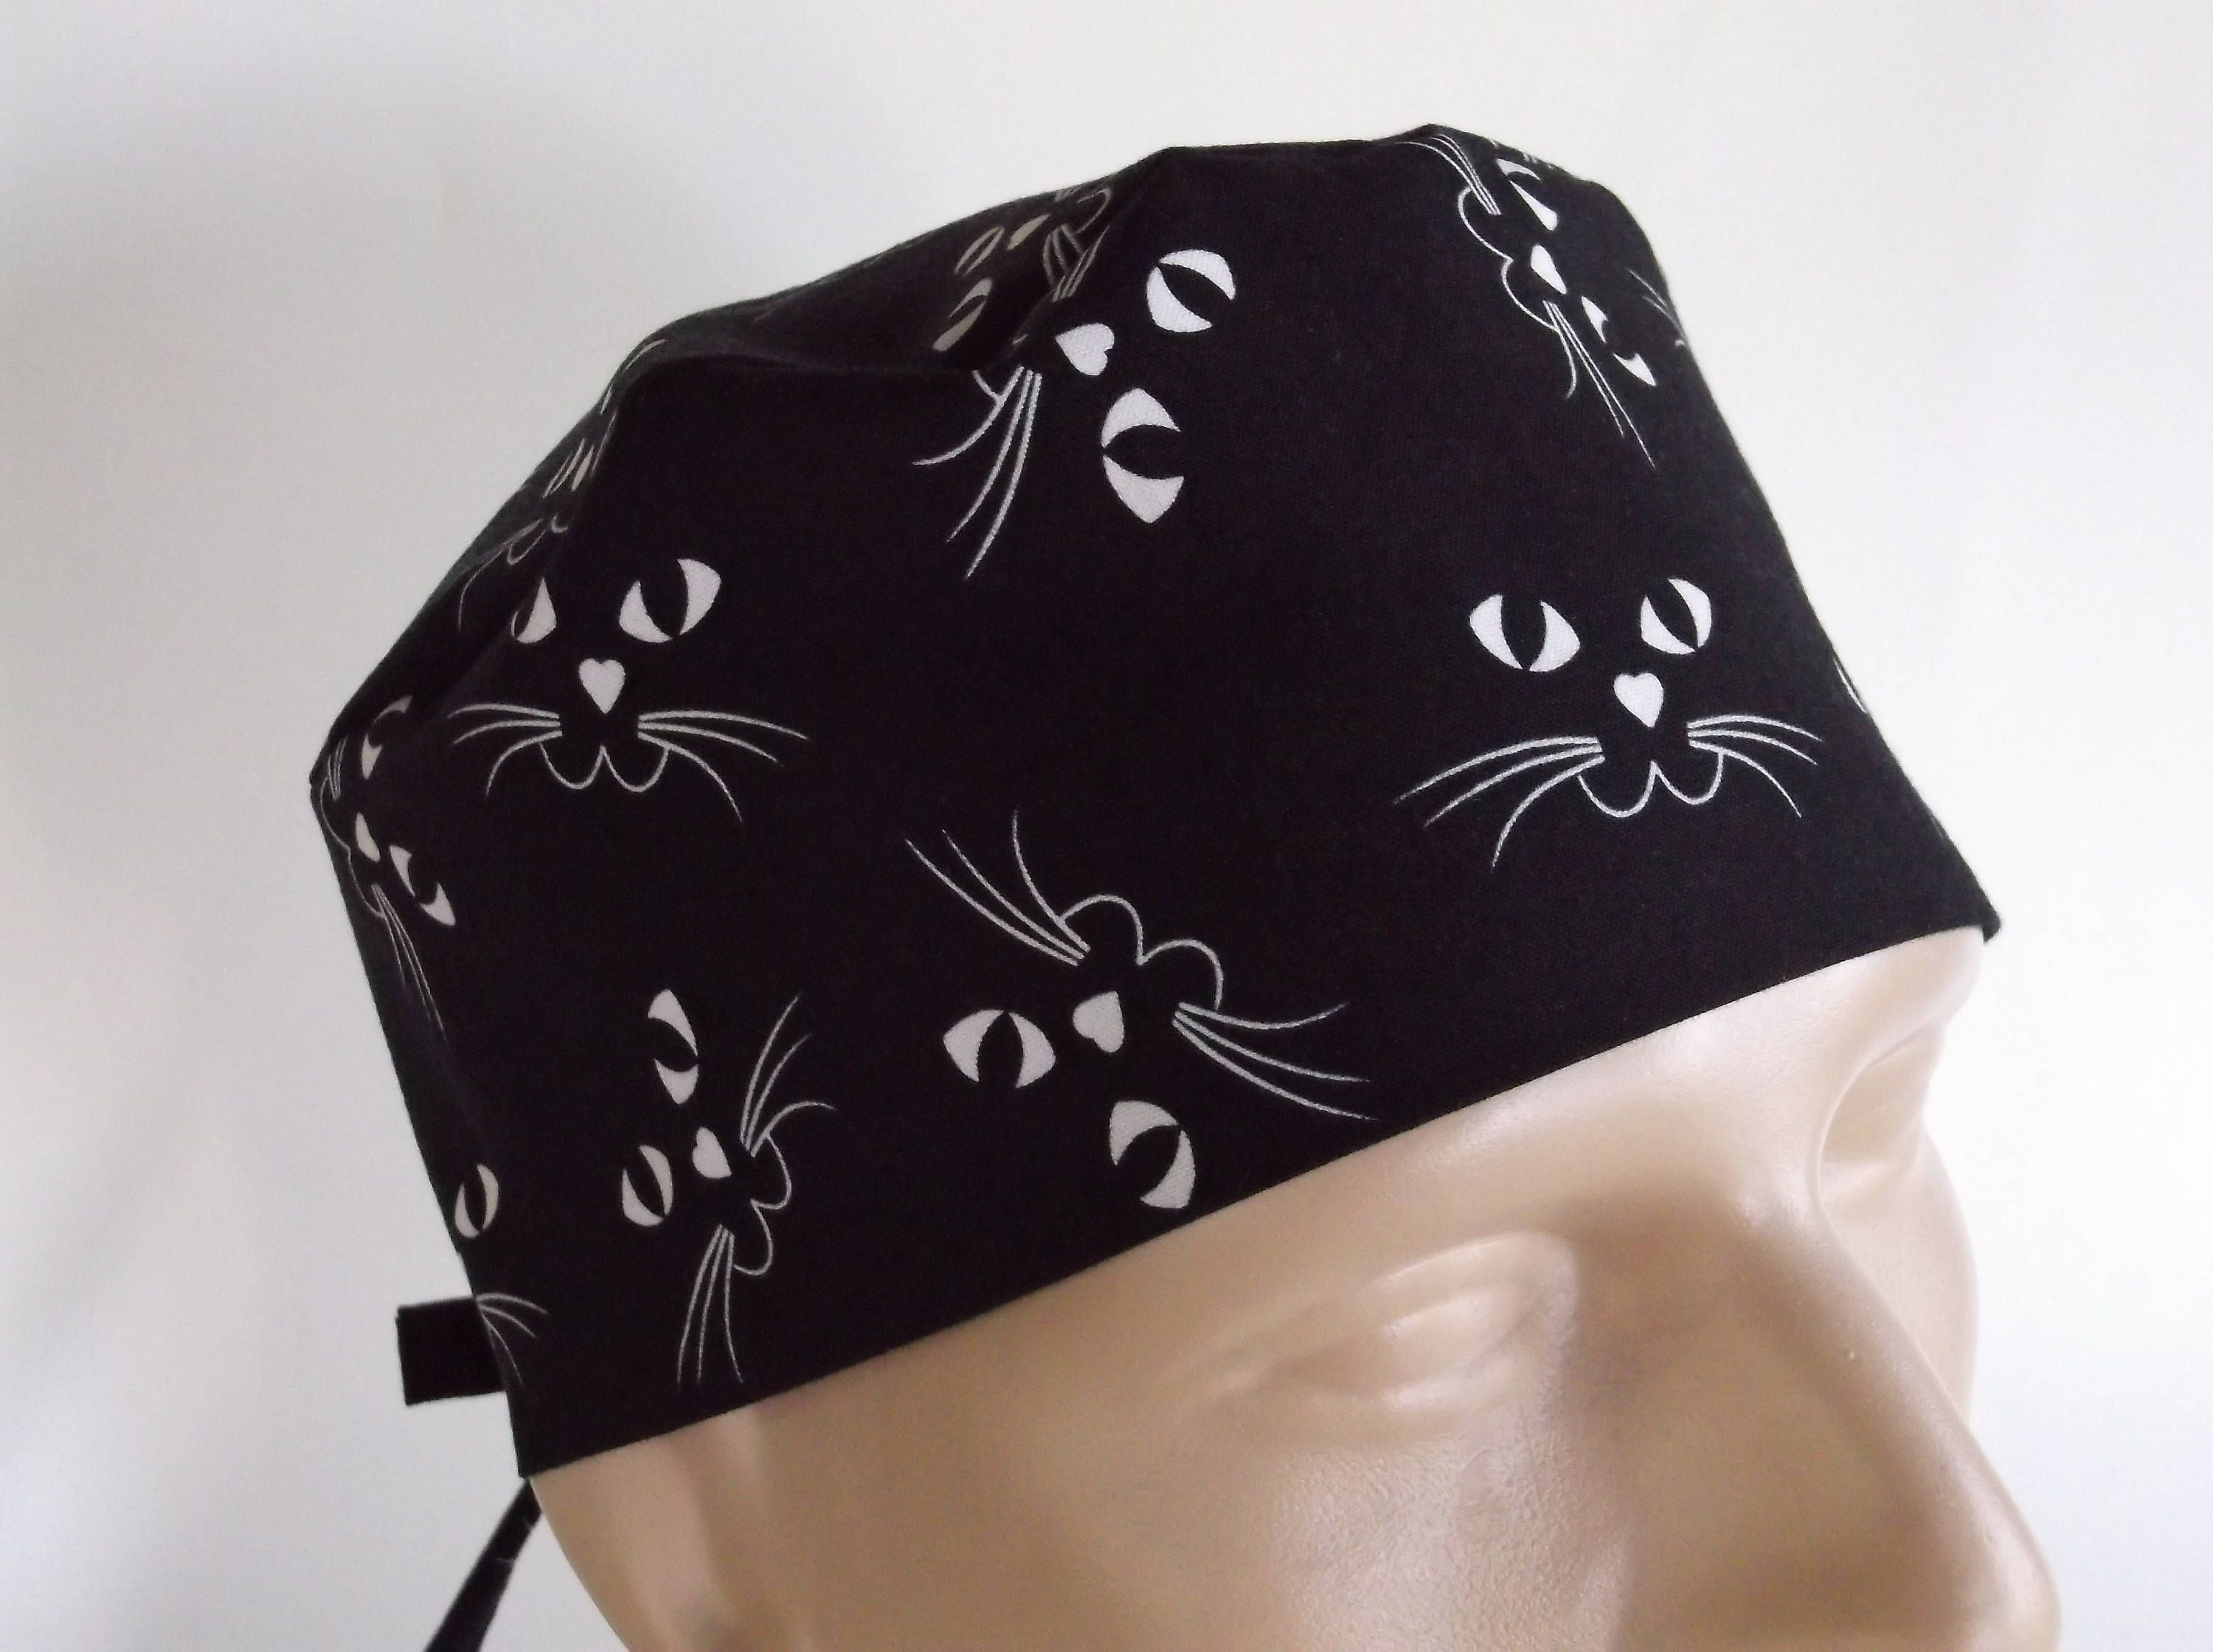 Glow in the Dark Cat Faces Men s Surgical Scrub Hat with sweatband option 164e8f6ff448